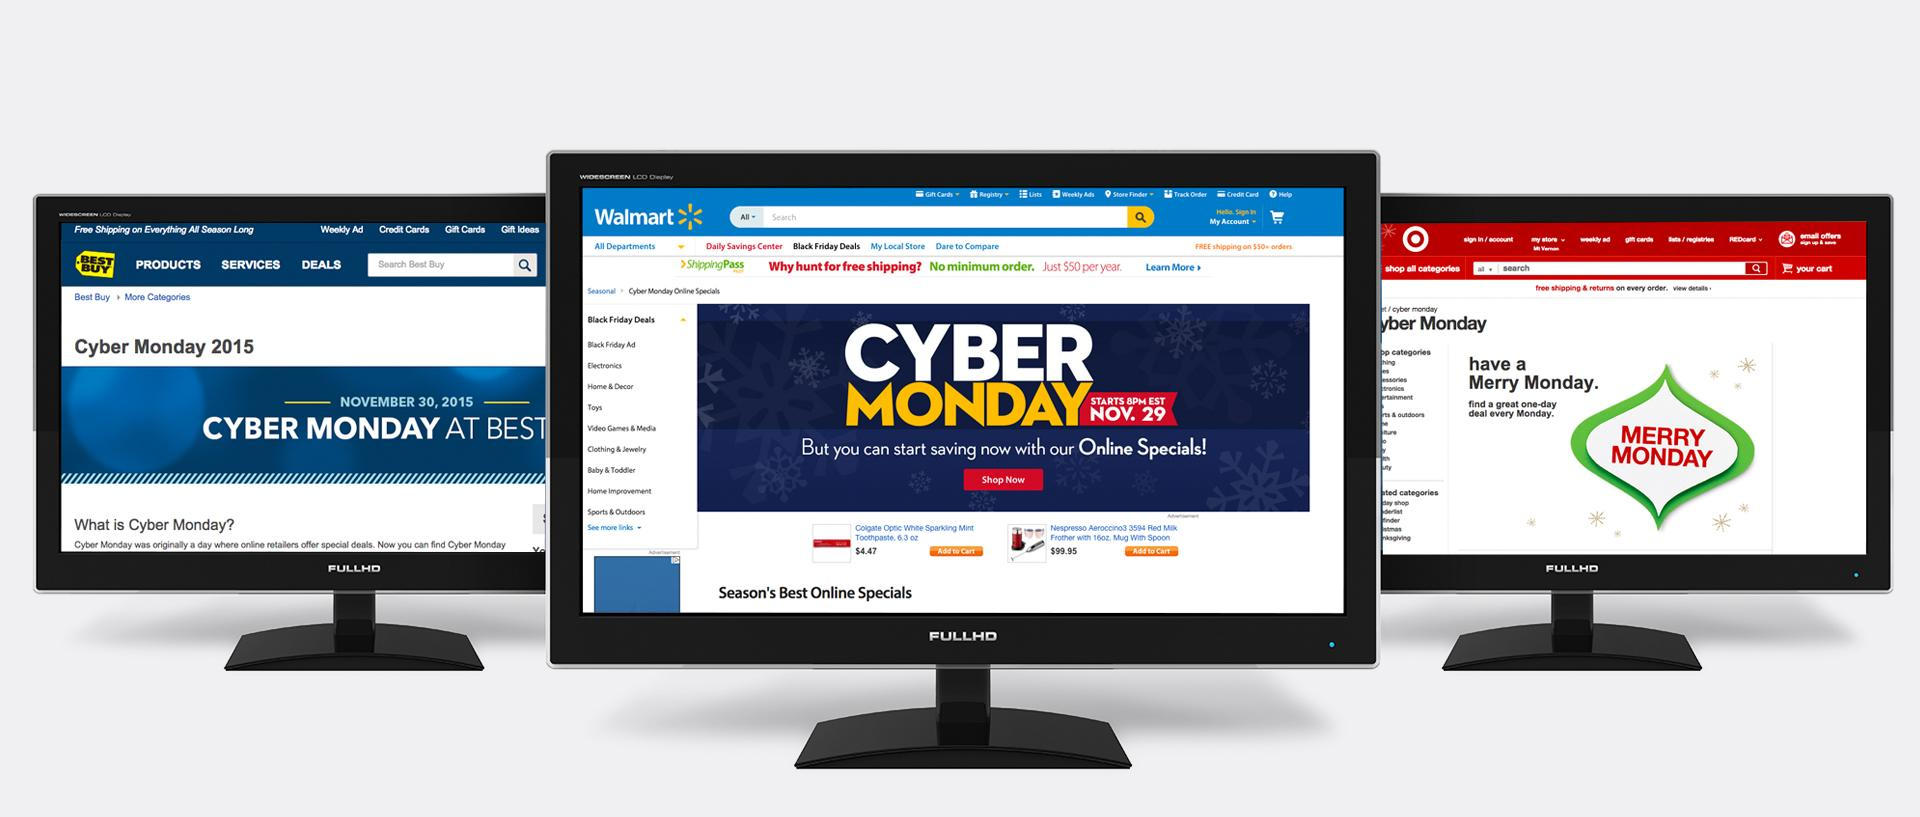 Top Cyber Monday Deals on Electronics